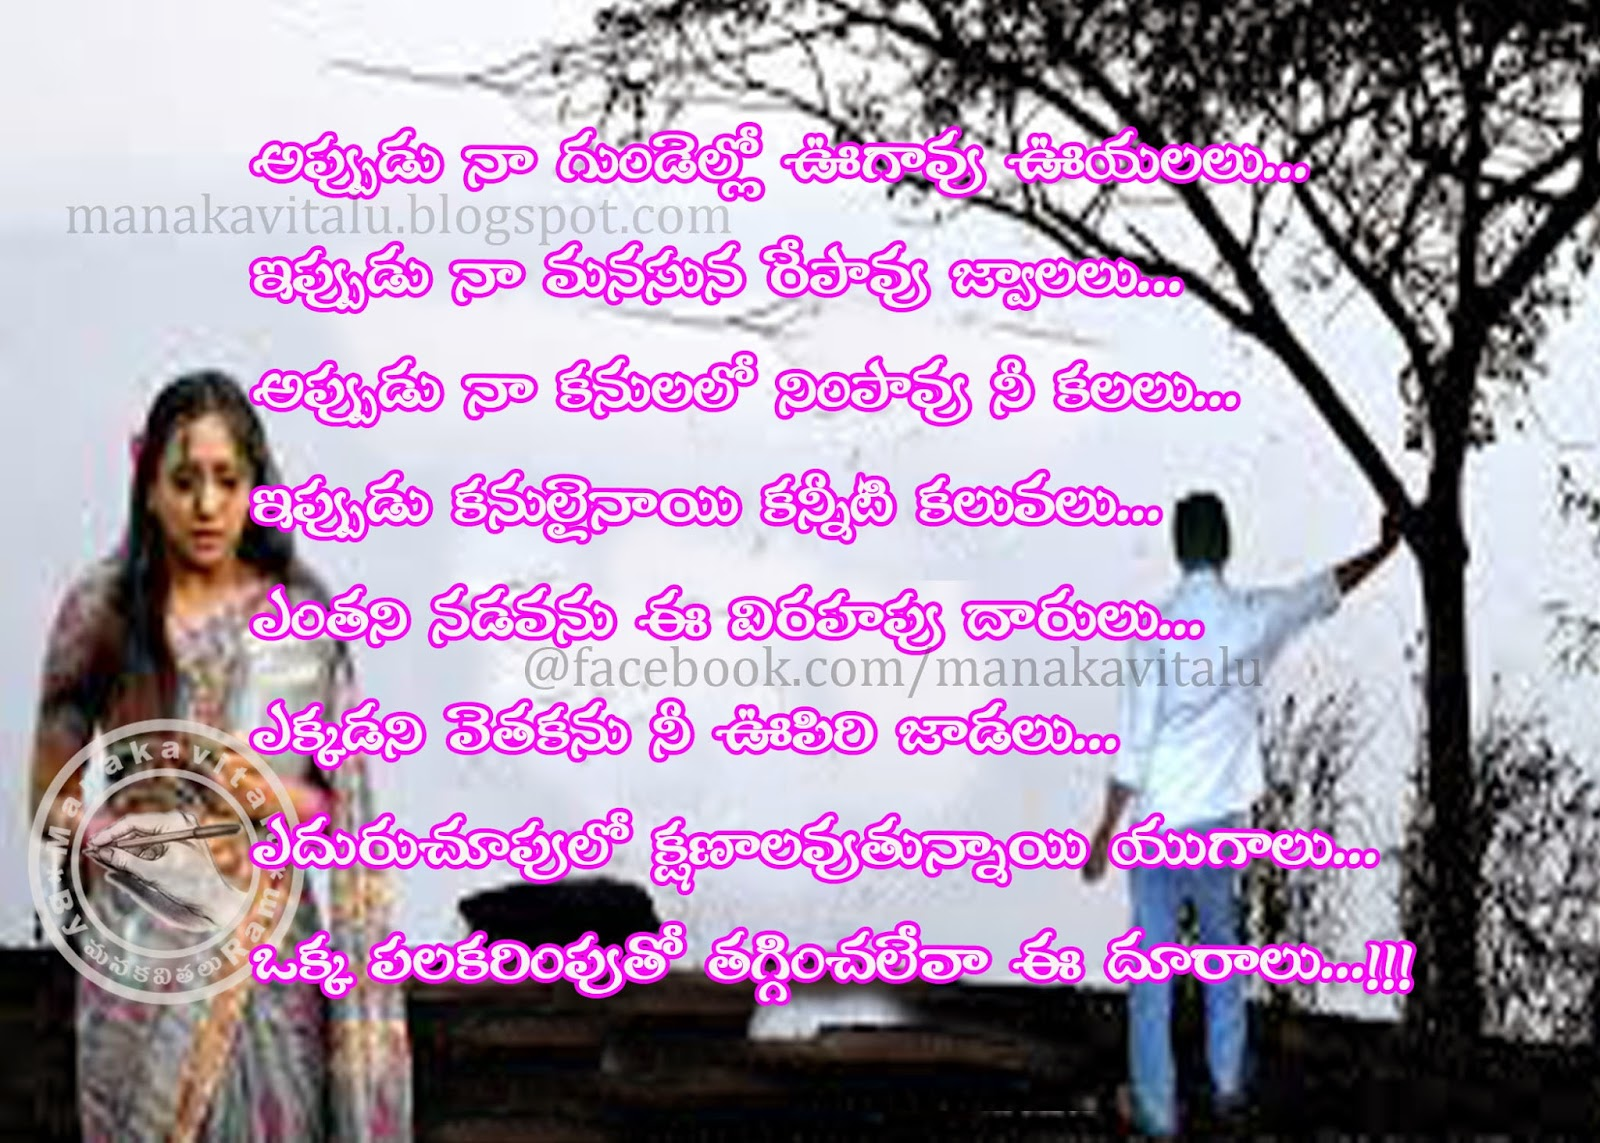 Telugu kavithalu on images for love failure persons